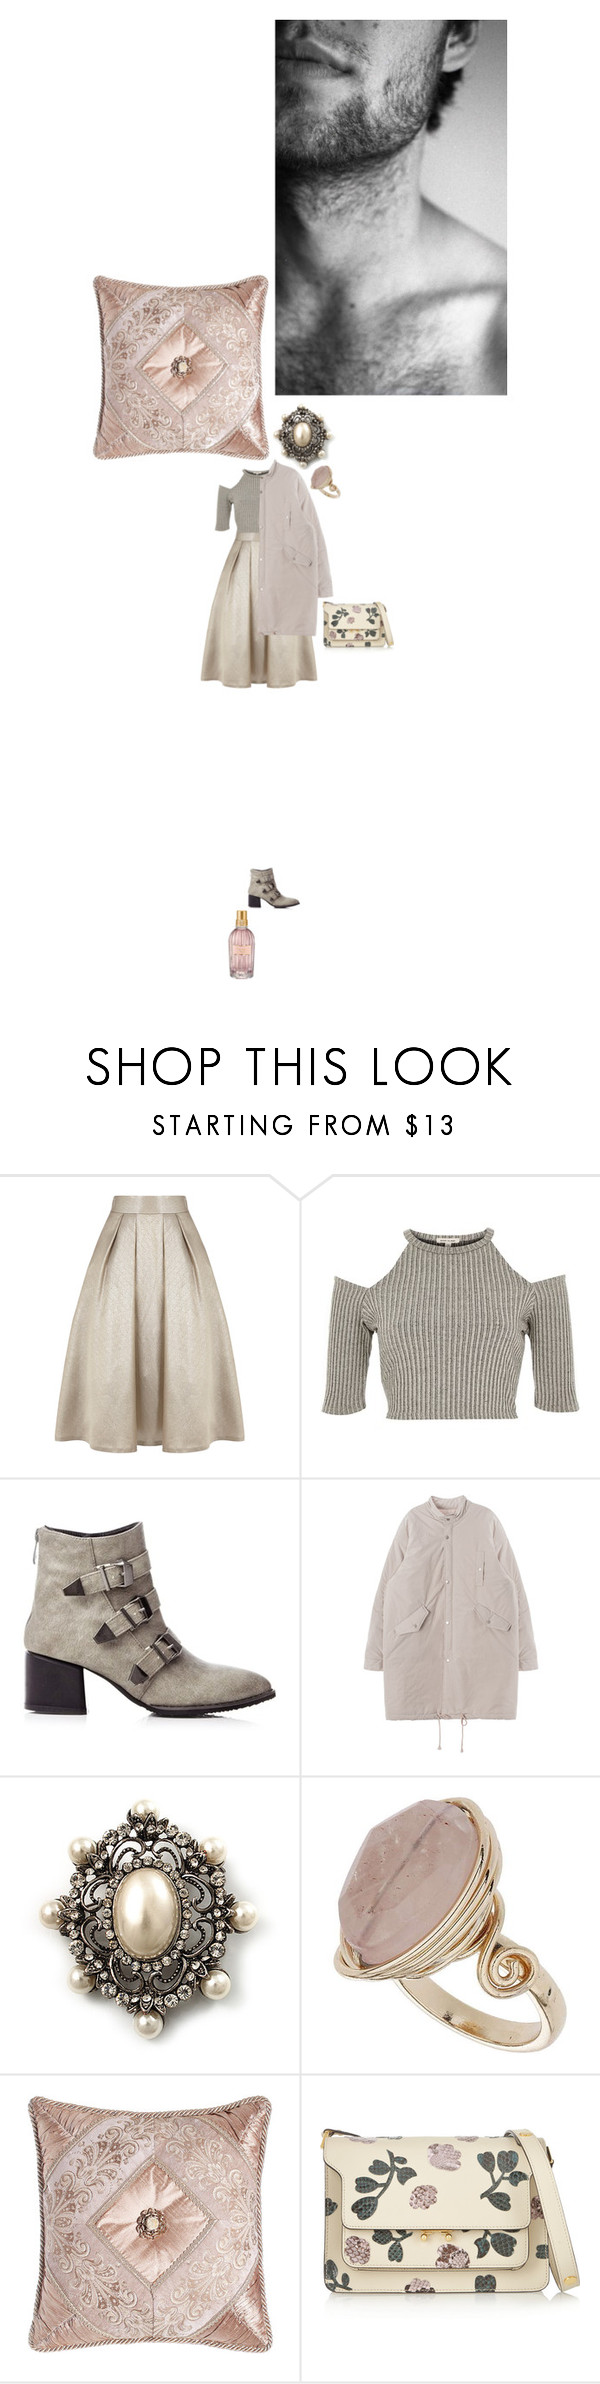 """Приласкай меня"" by anya-moscow ❤ liked on Polyvore featuring Coast, River Island, Avalaya, Topshop, Dian Austin Couture Home, Marni, L'Occitane, set, look and fashionset"